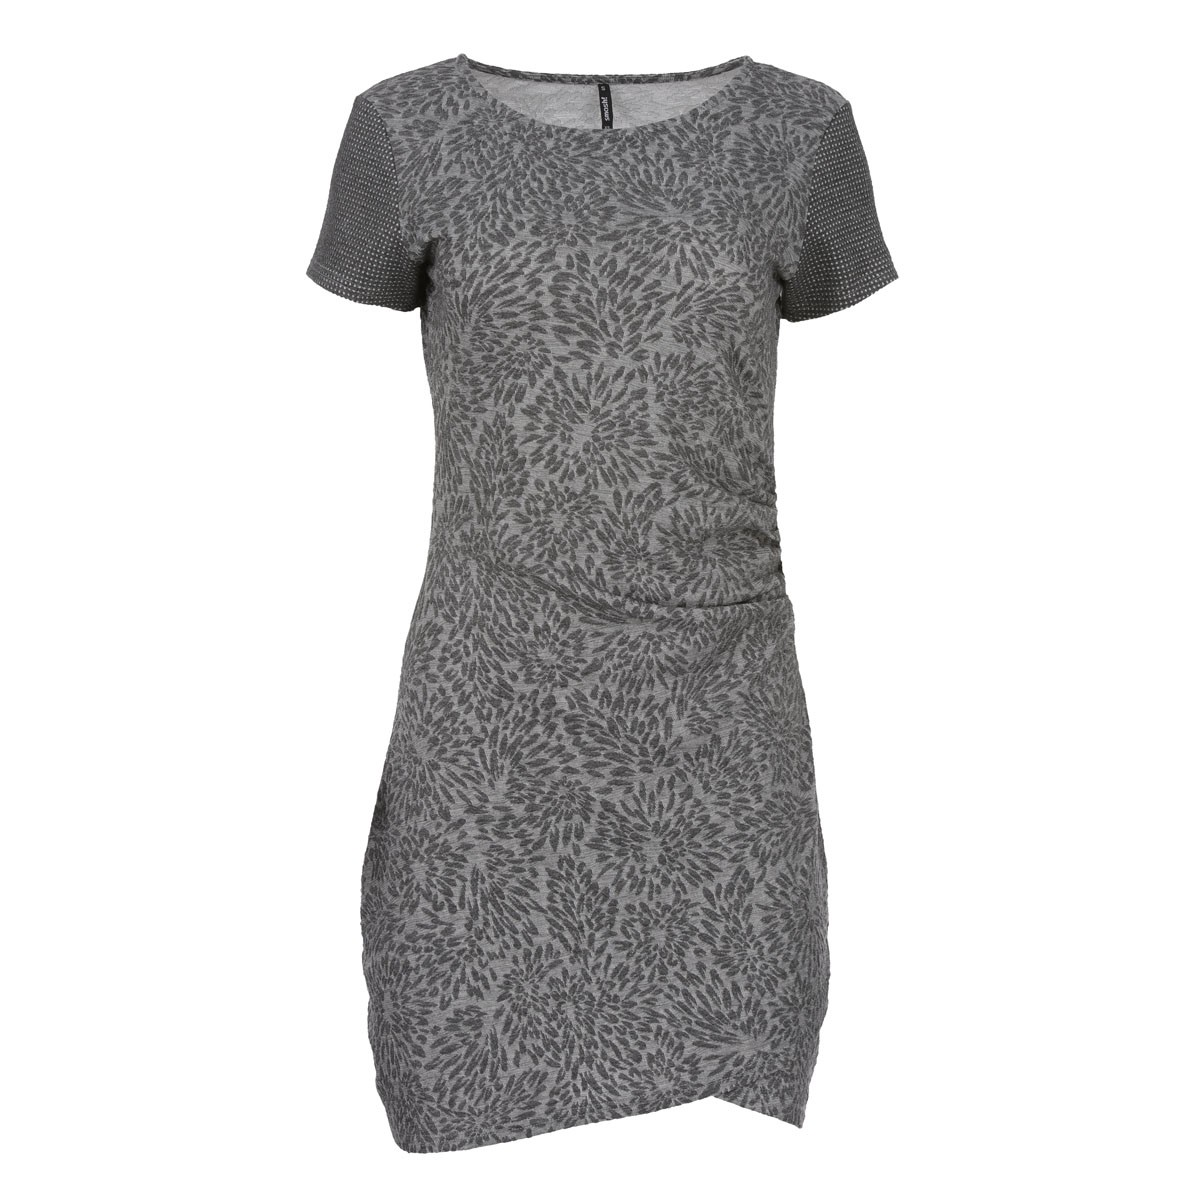 be5118beb3 robe-flavour-manches-courtes-femme-gris.jpg